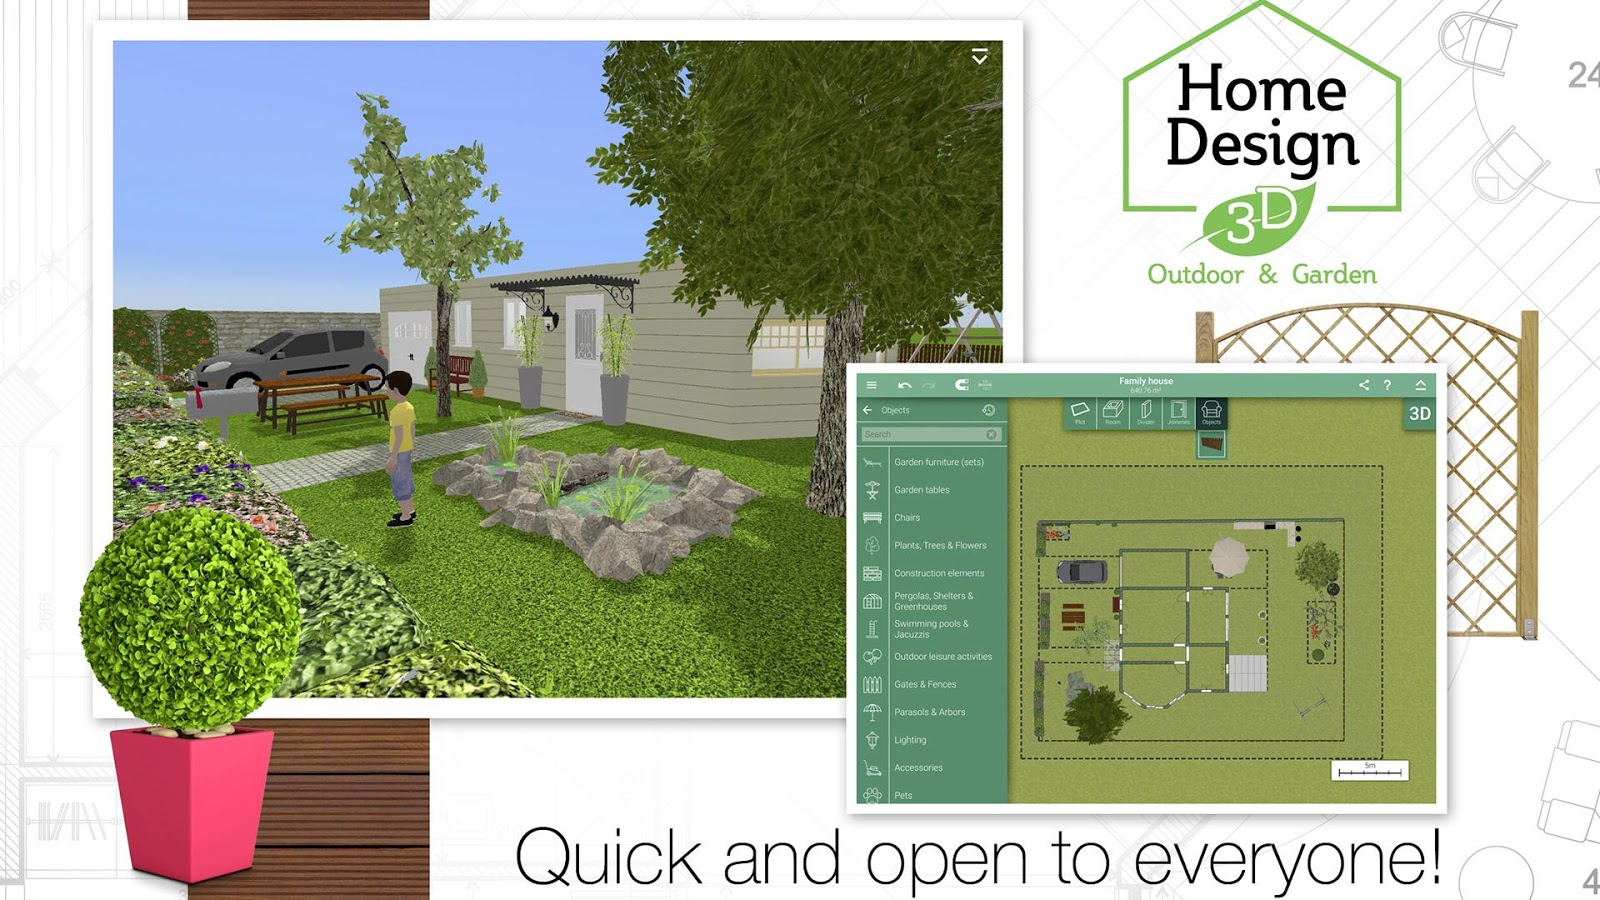 home design 3d outdoor/garden - android apps on google play, Powerpoint templates